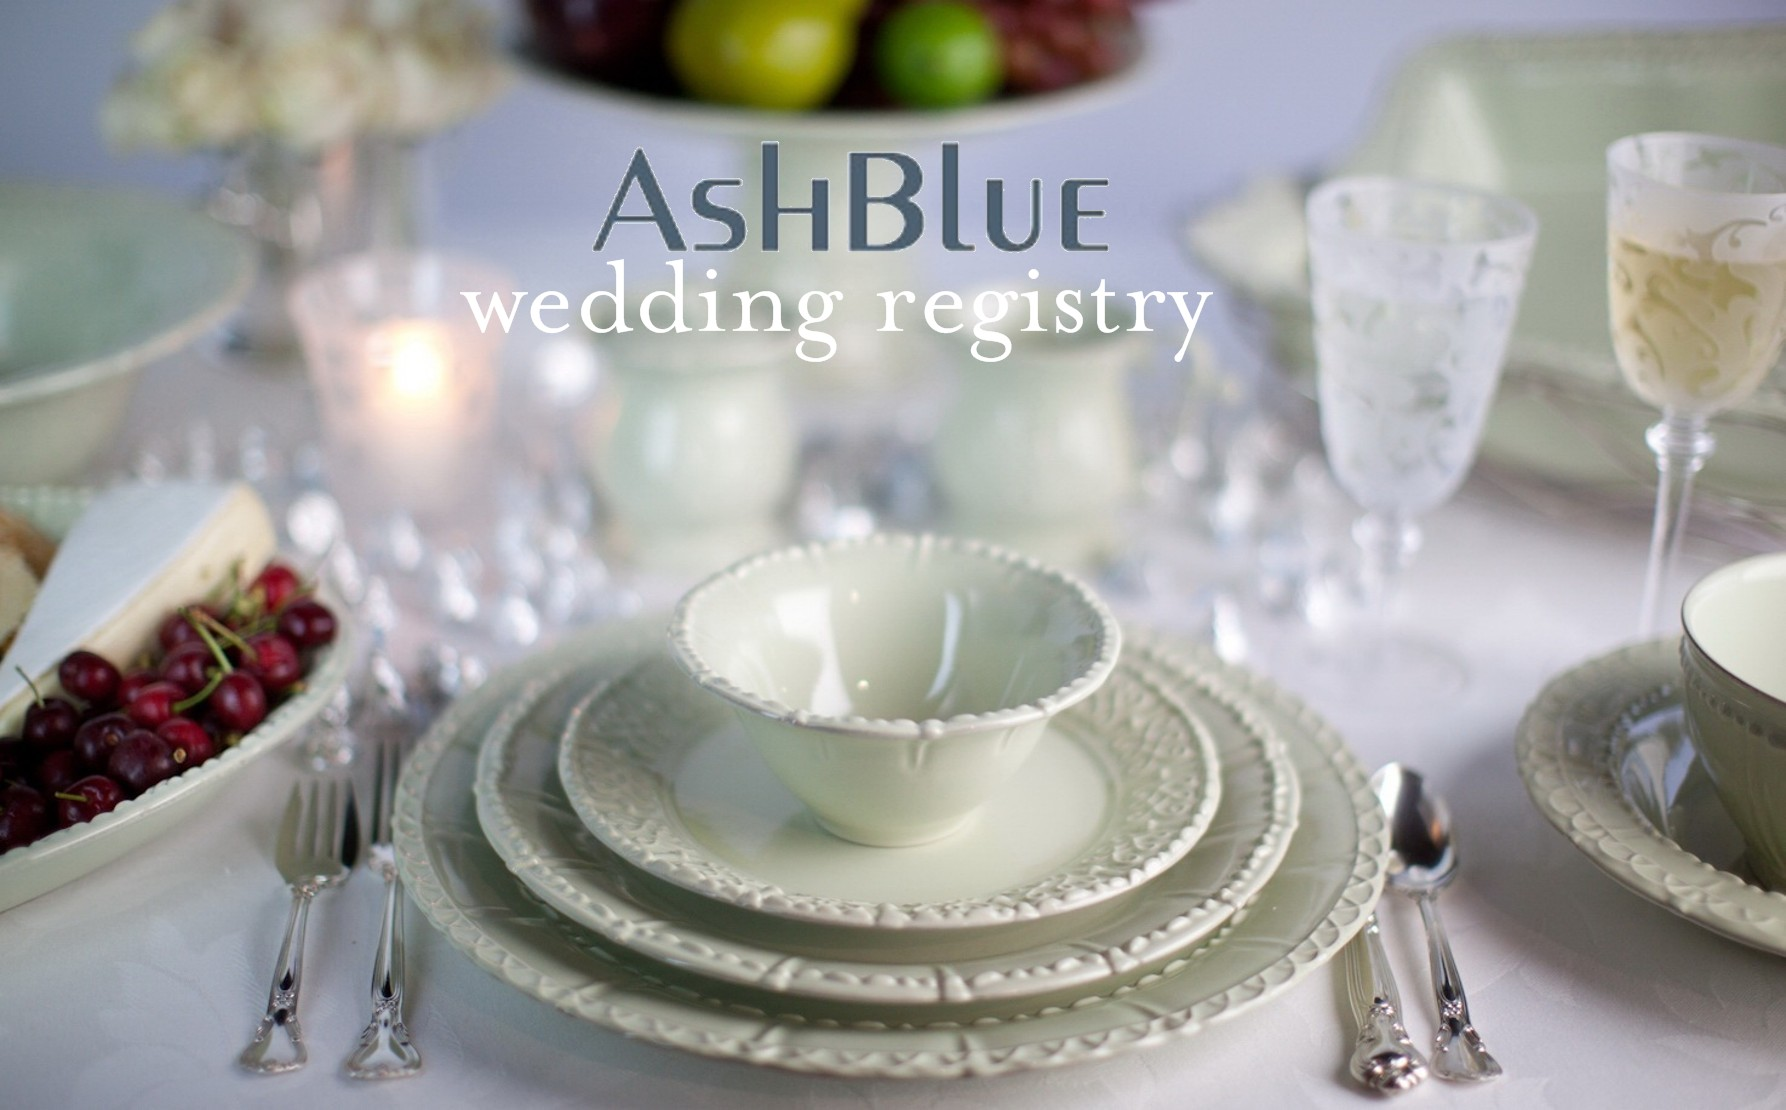 Wedding registry need some fine china everyday dishes glassware towels picture frames candles or maybe even some jewelry for yourself solutioingenieria Image collections